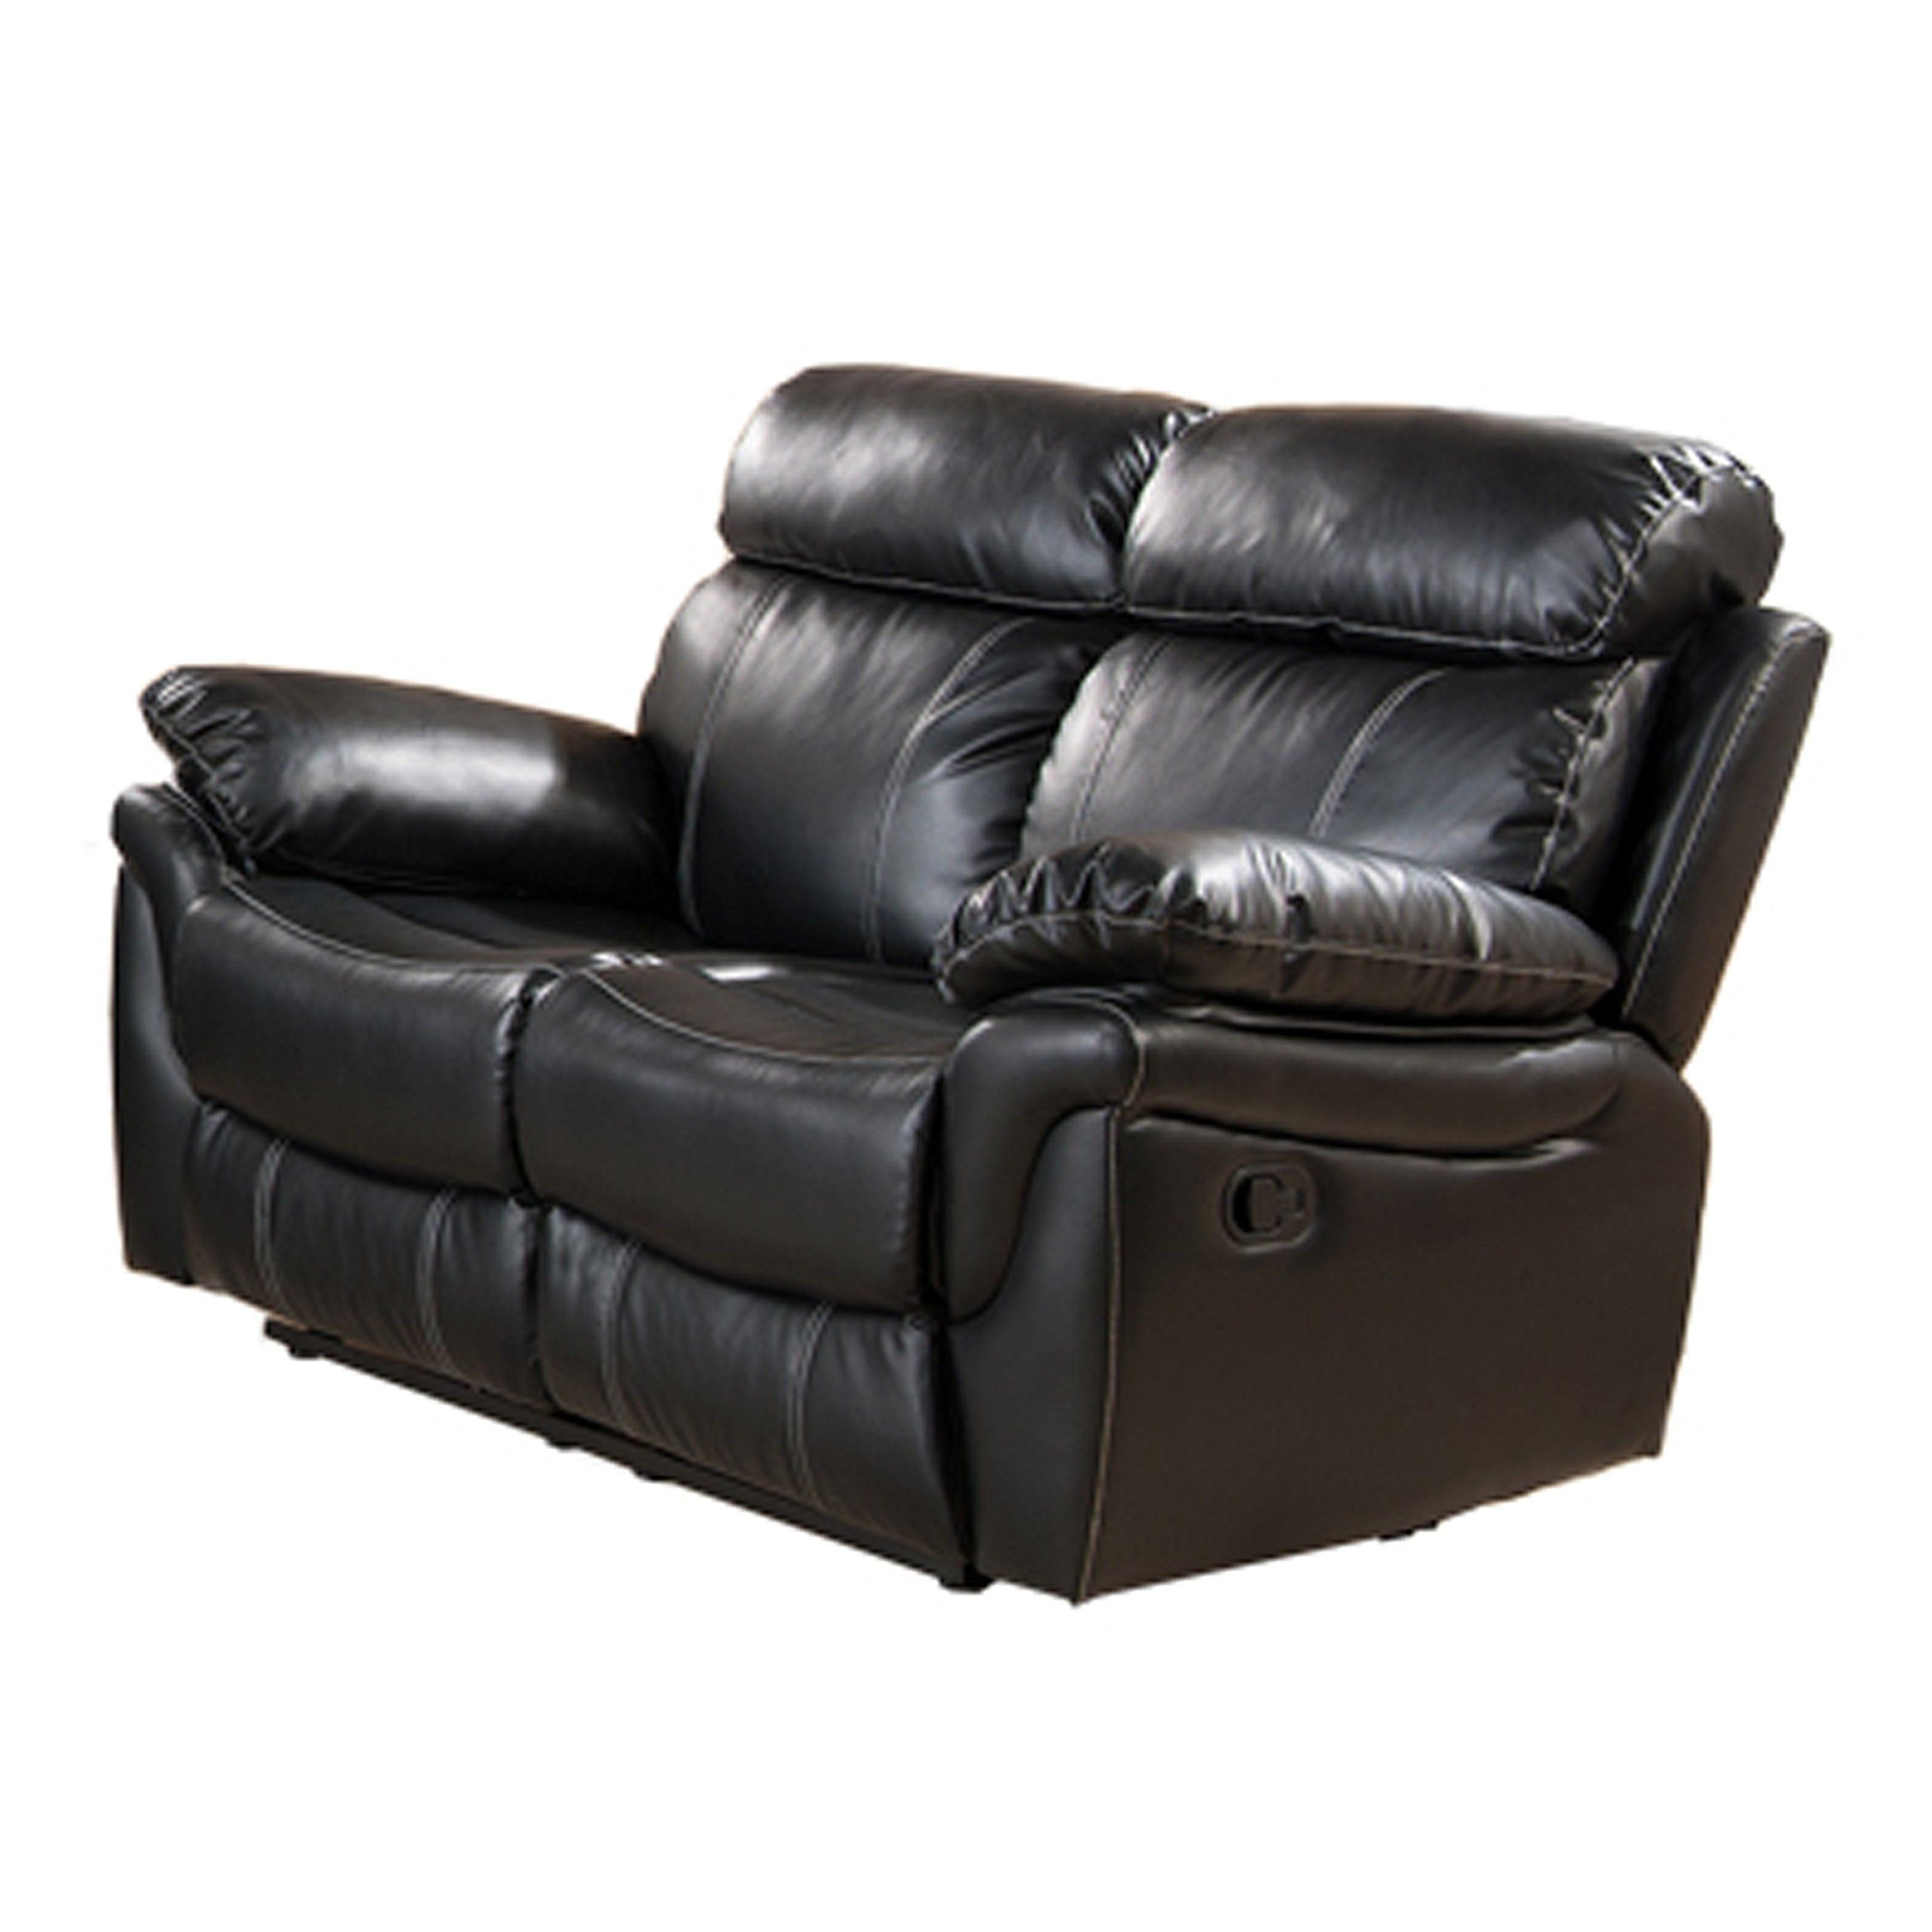 Milton Greens Stars Sophia Reclining Love Seat, 67 Inch By 38 Inch By 40  Inch, Black. Luxurious, Plush Faux Leatherette Upholstery With Subtle  Stitching.